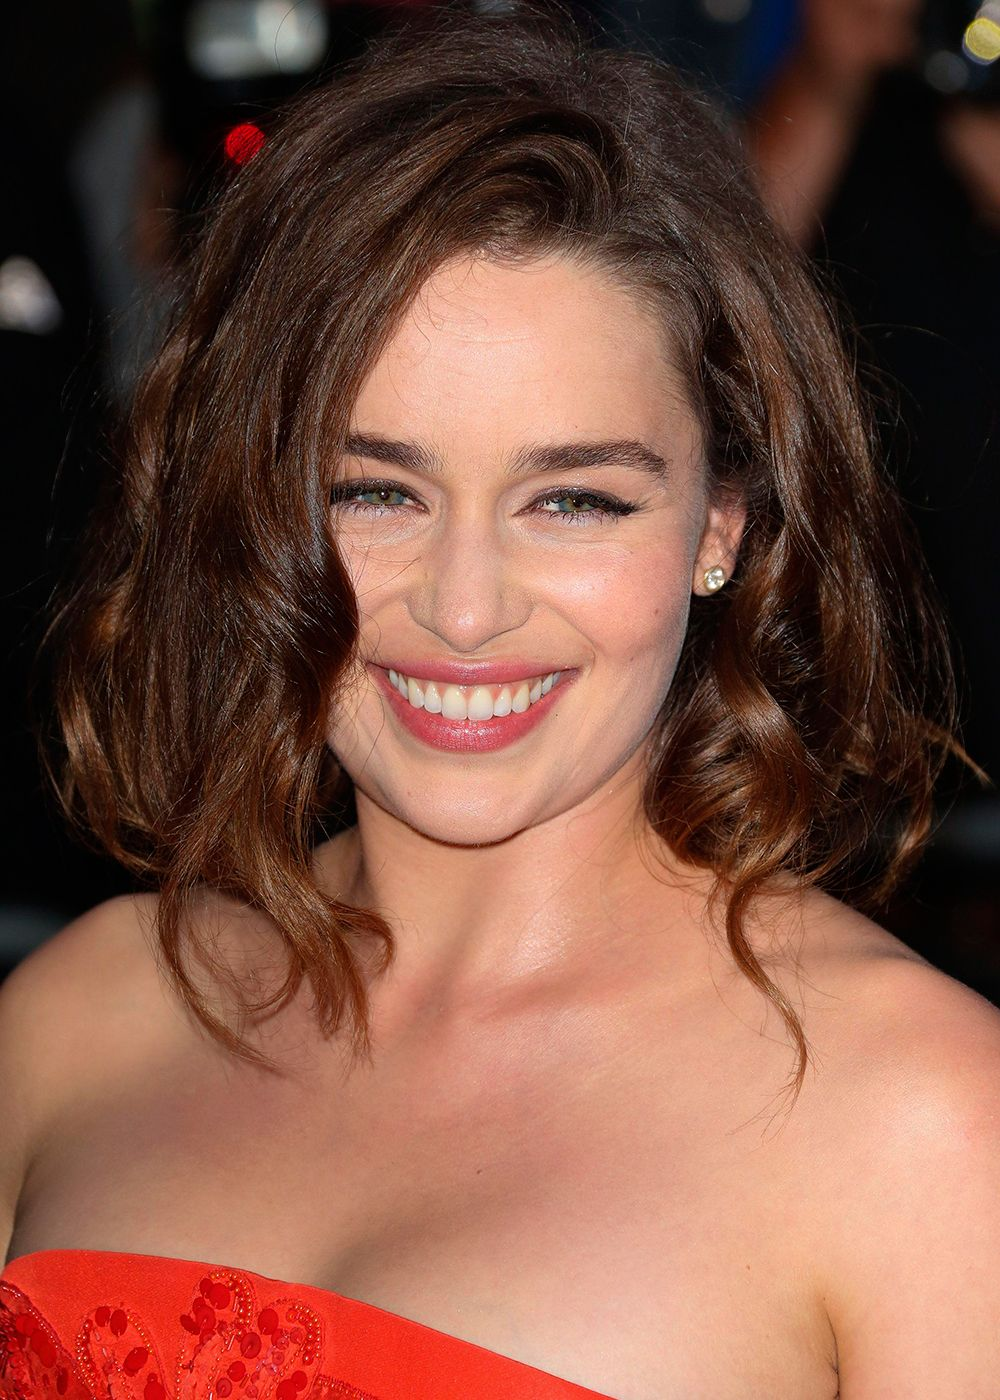 Emilia Clarke Gives Us A First Look At Her Platinum Blonde